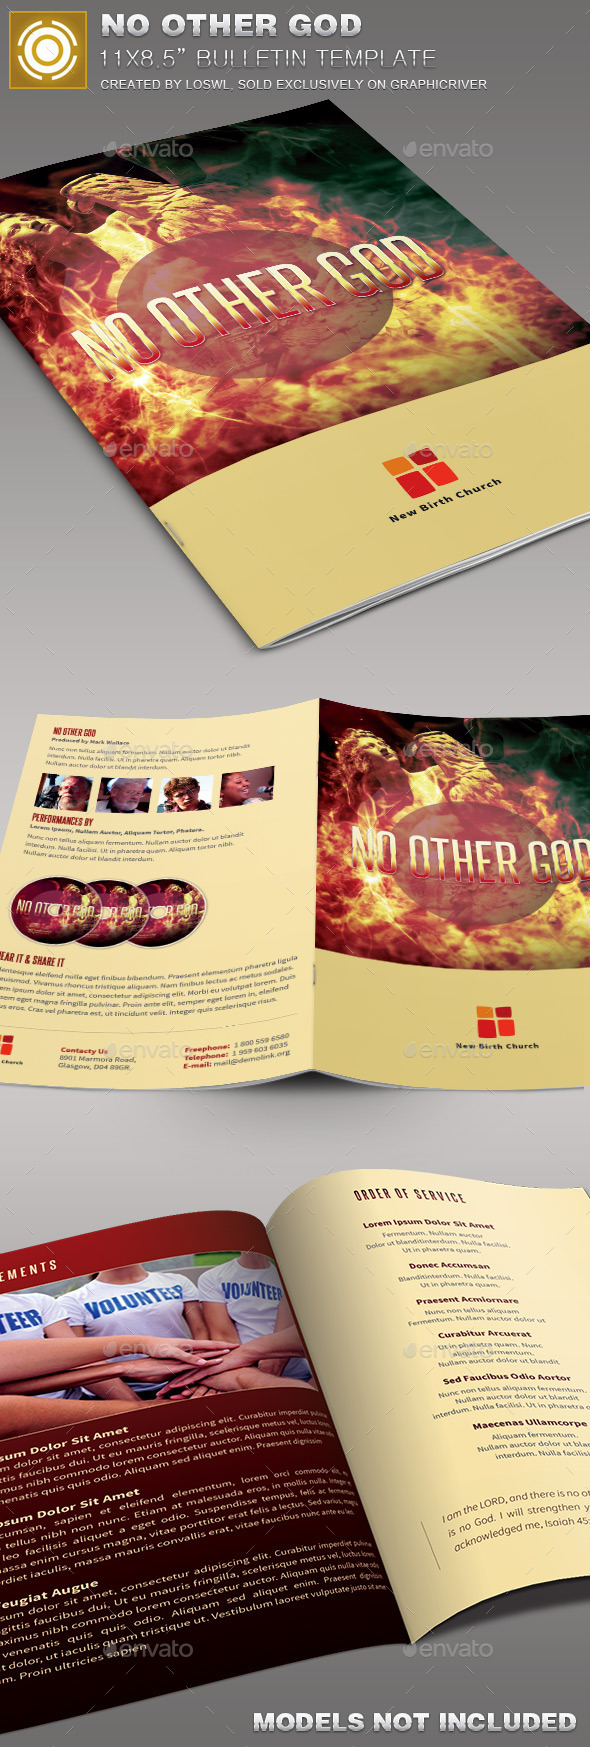 No Other God  Church Bulletin Template - Informational Brochures